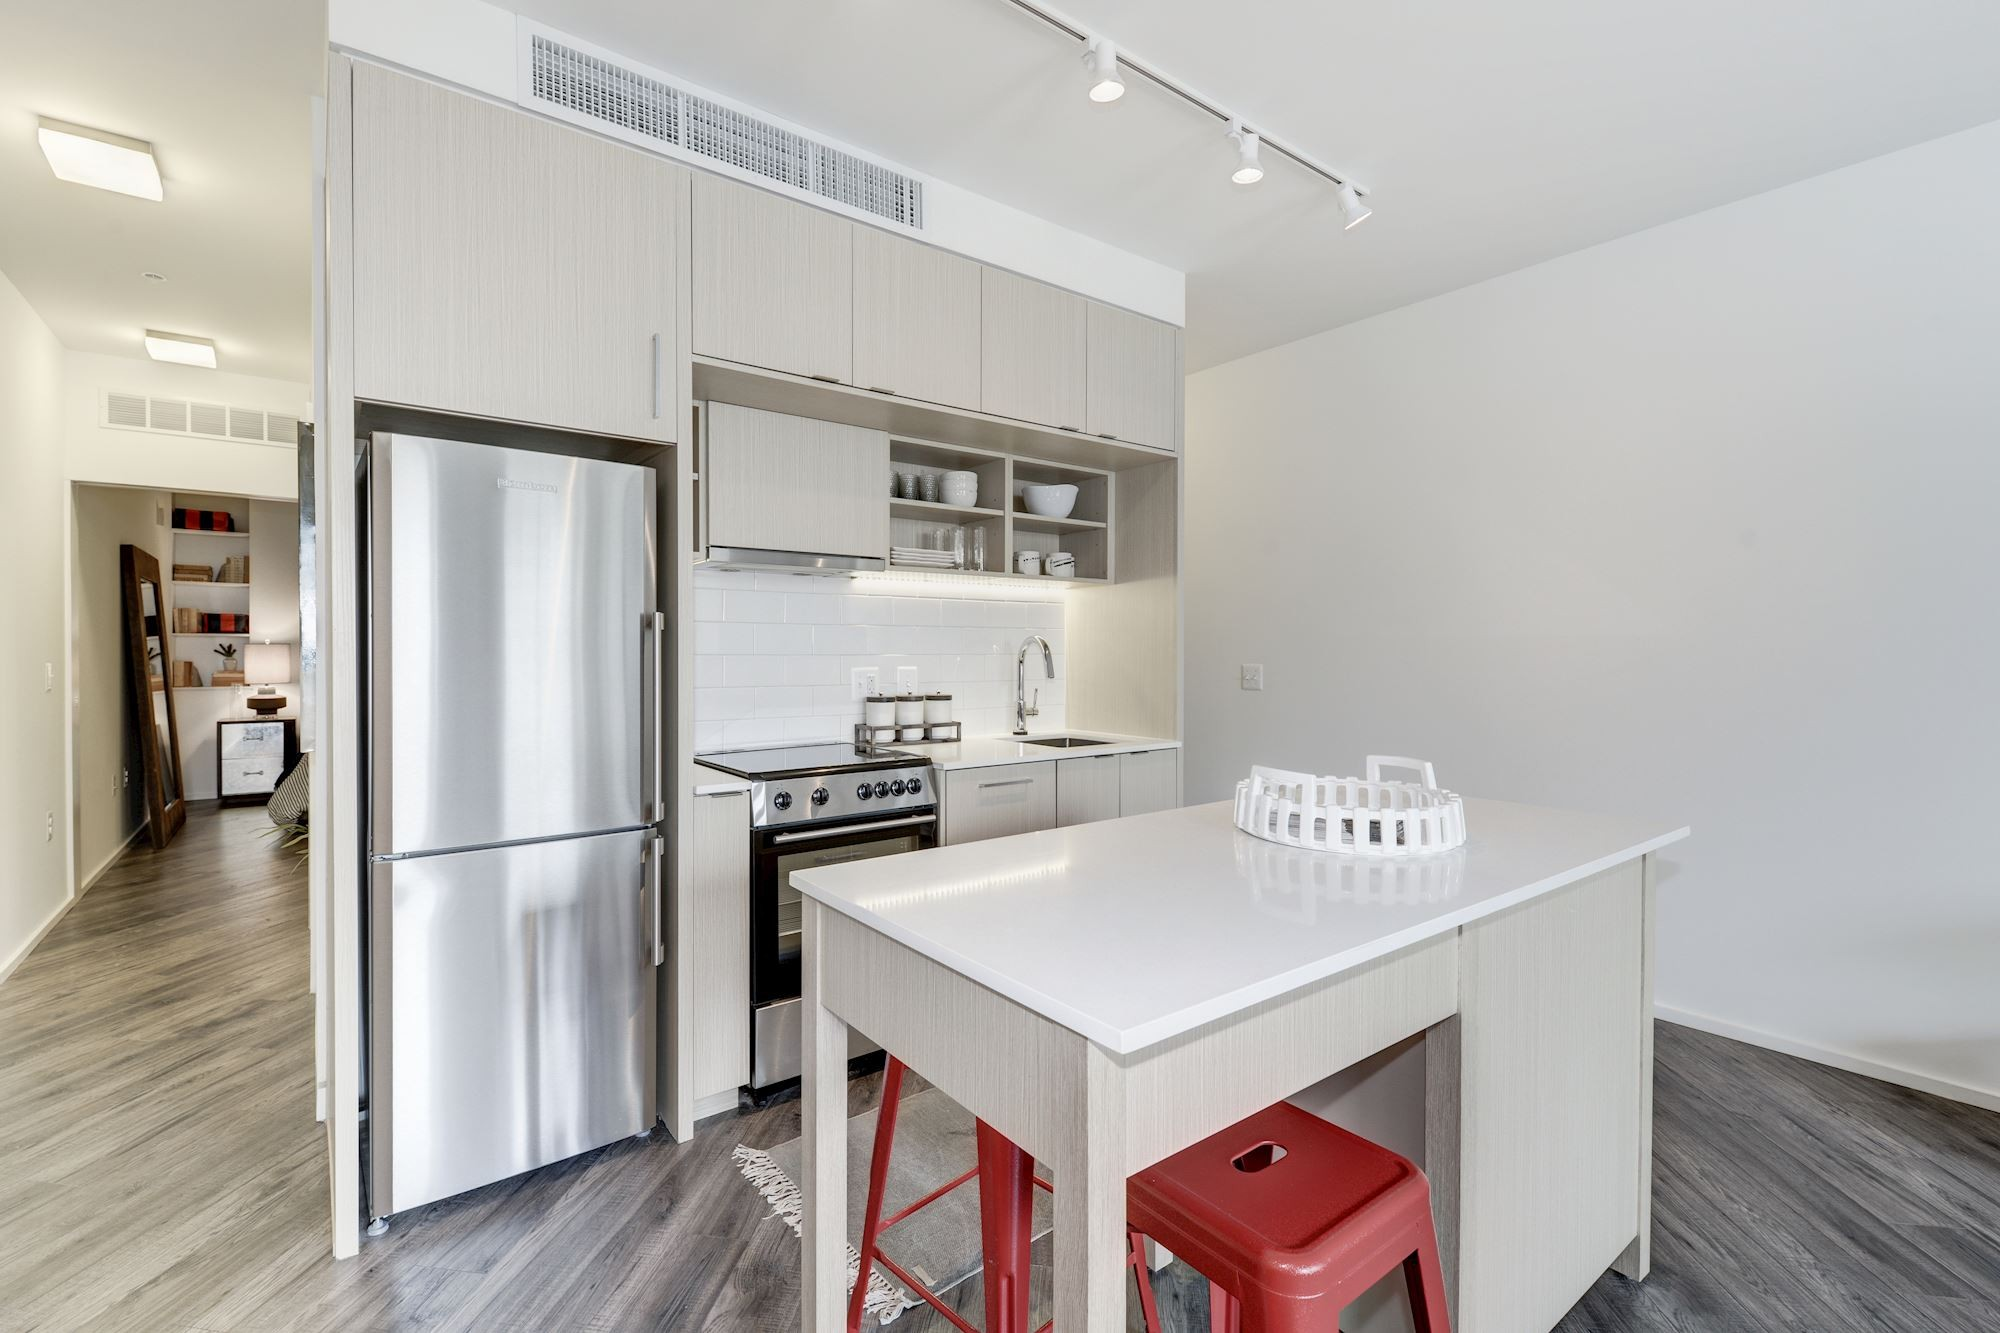 camden roosevelt apartments for rent 2101 16th st nw washington